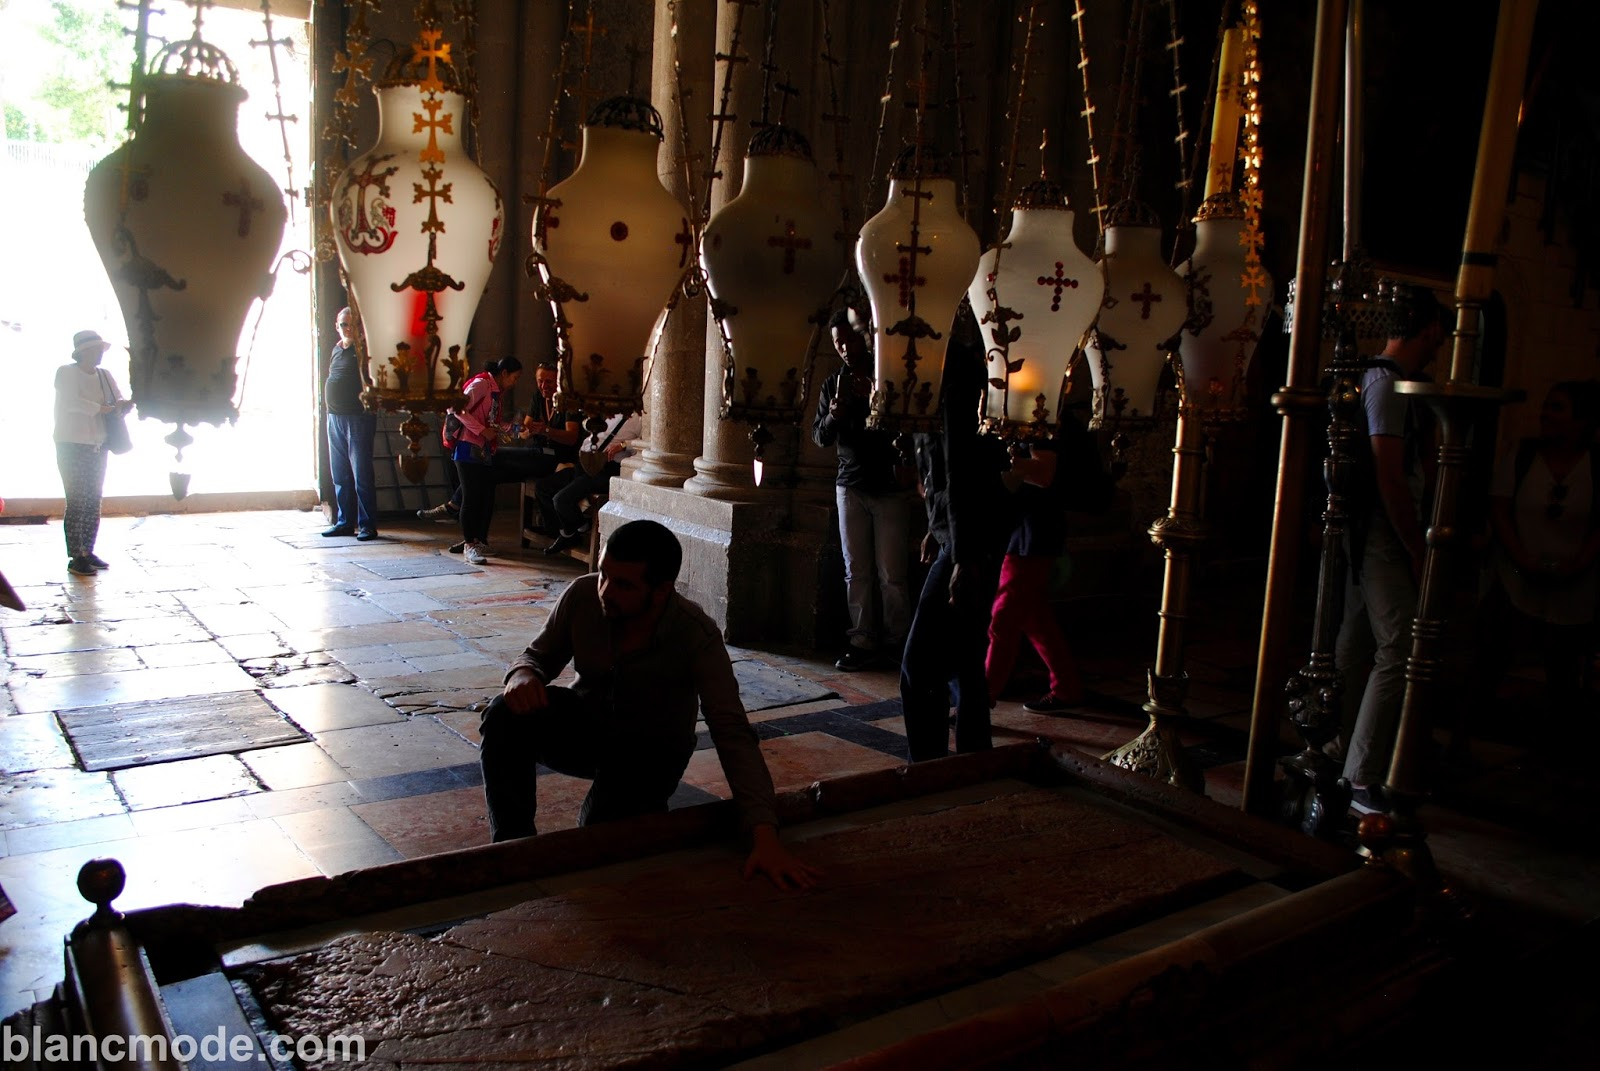 church of the holy sepulchre where Jesus was cleaned after crucifixion